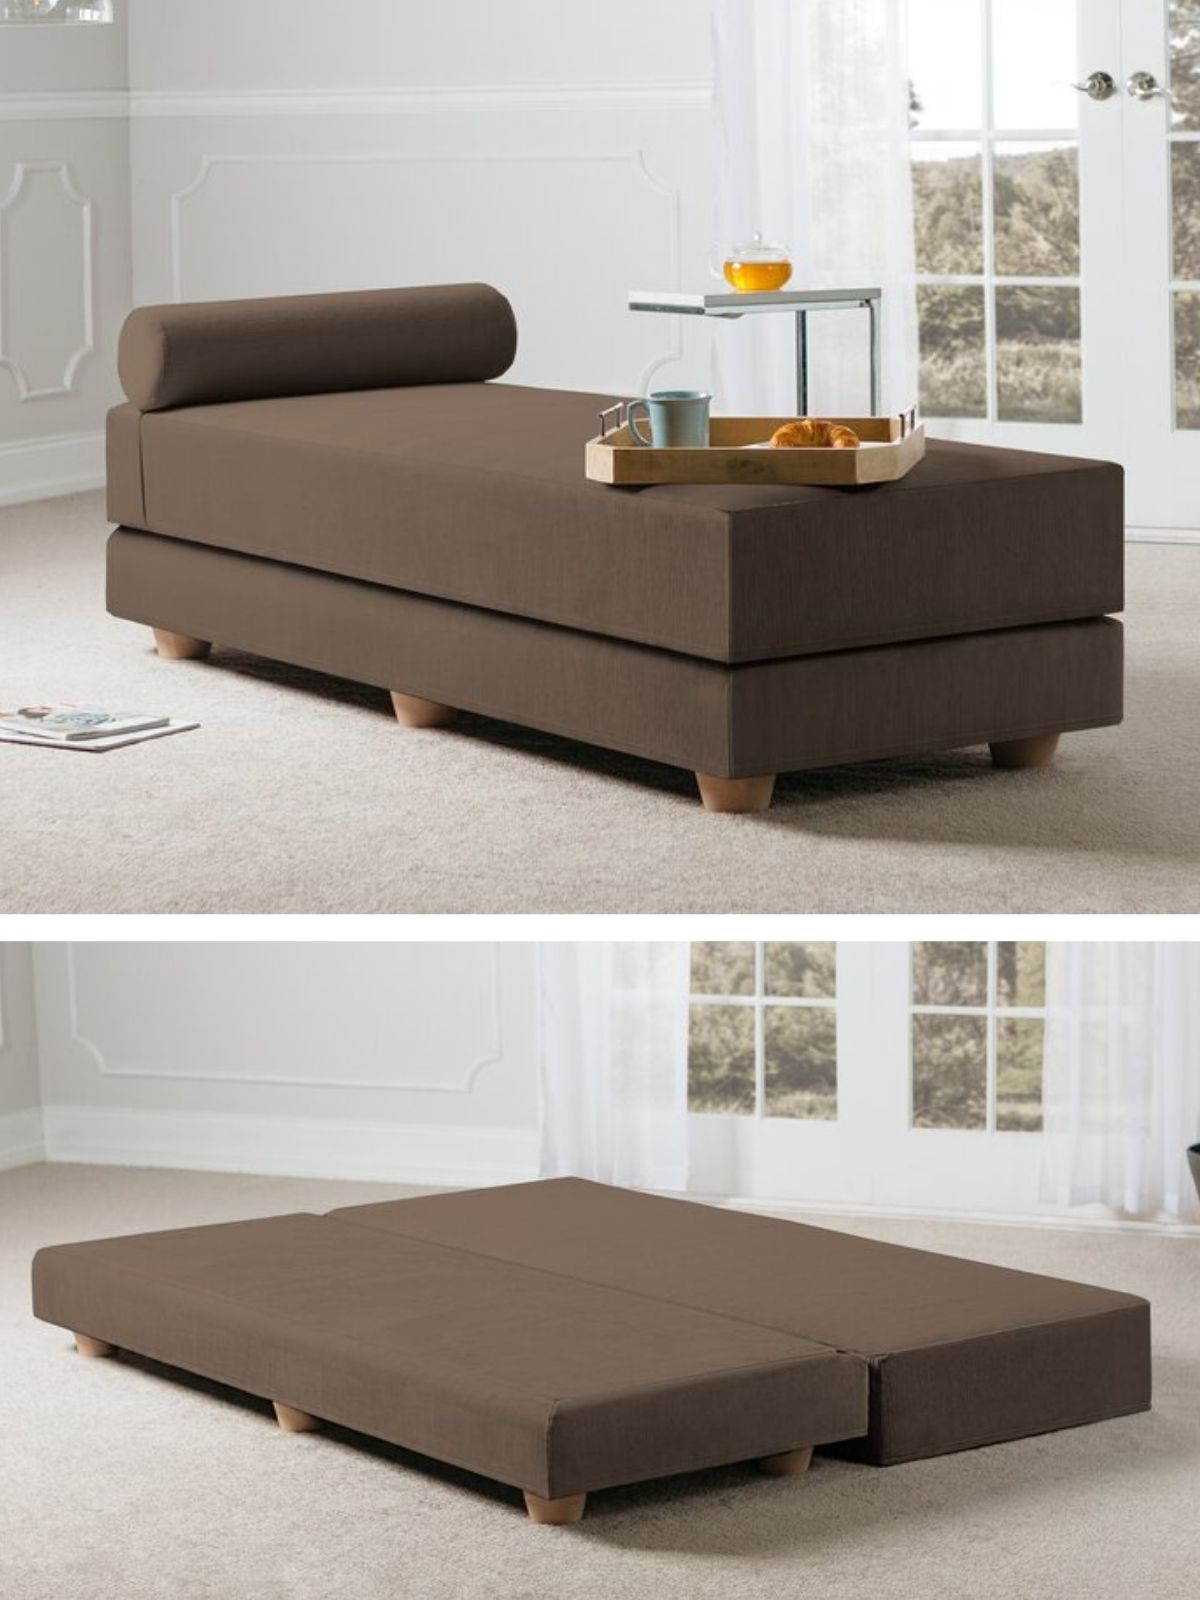 daybed brown - 20 delightful daybeds that easily convert into comfortable beds